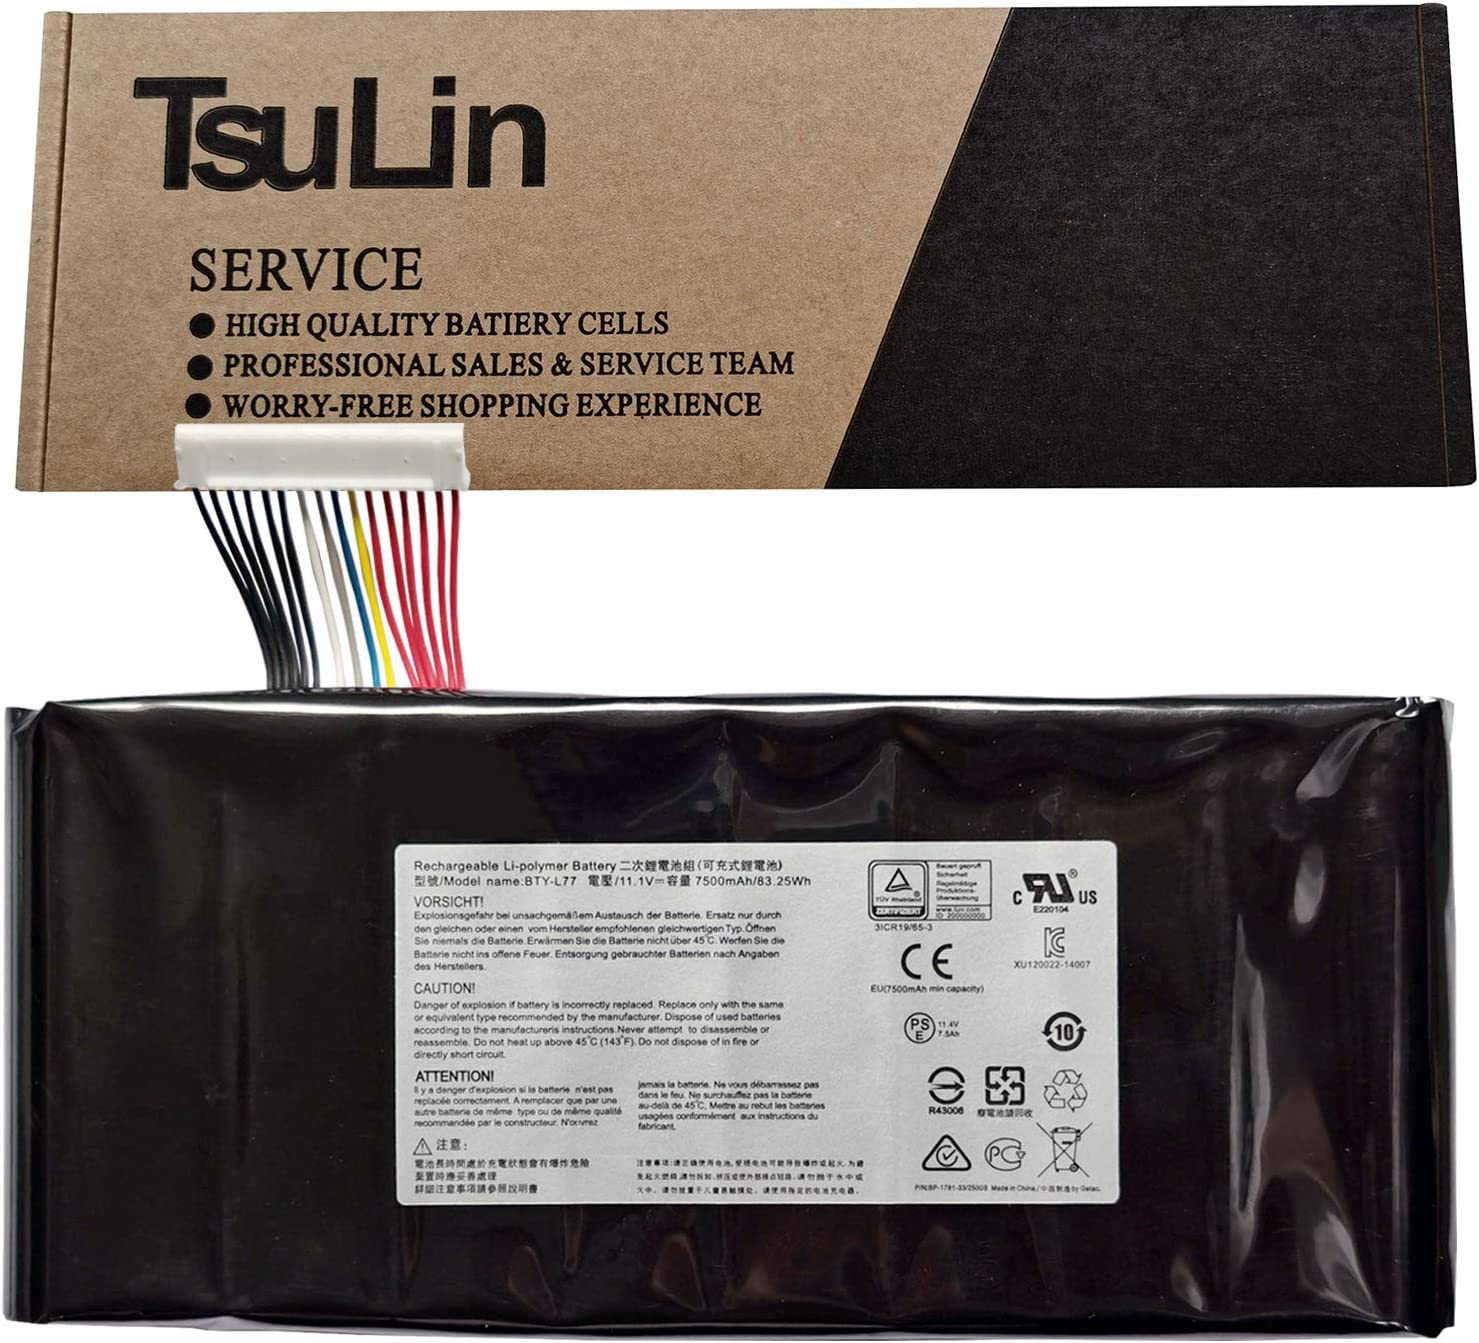 TsuLin BTY-L77 Laptop Battery Compatible with MSI GT72 2QD 2PE-022CN 2QD-1019XCN 2QD-292XCN GT72S 6QF GT80 2QE GT72VR WT72 MS-1781 MS-1783 Series Notebook 11.1V 83.25Wh 7500mAh